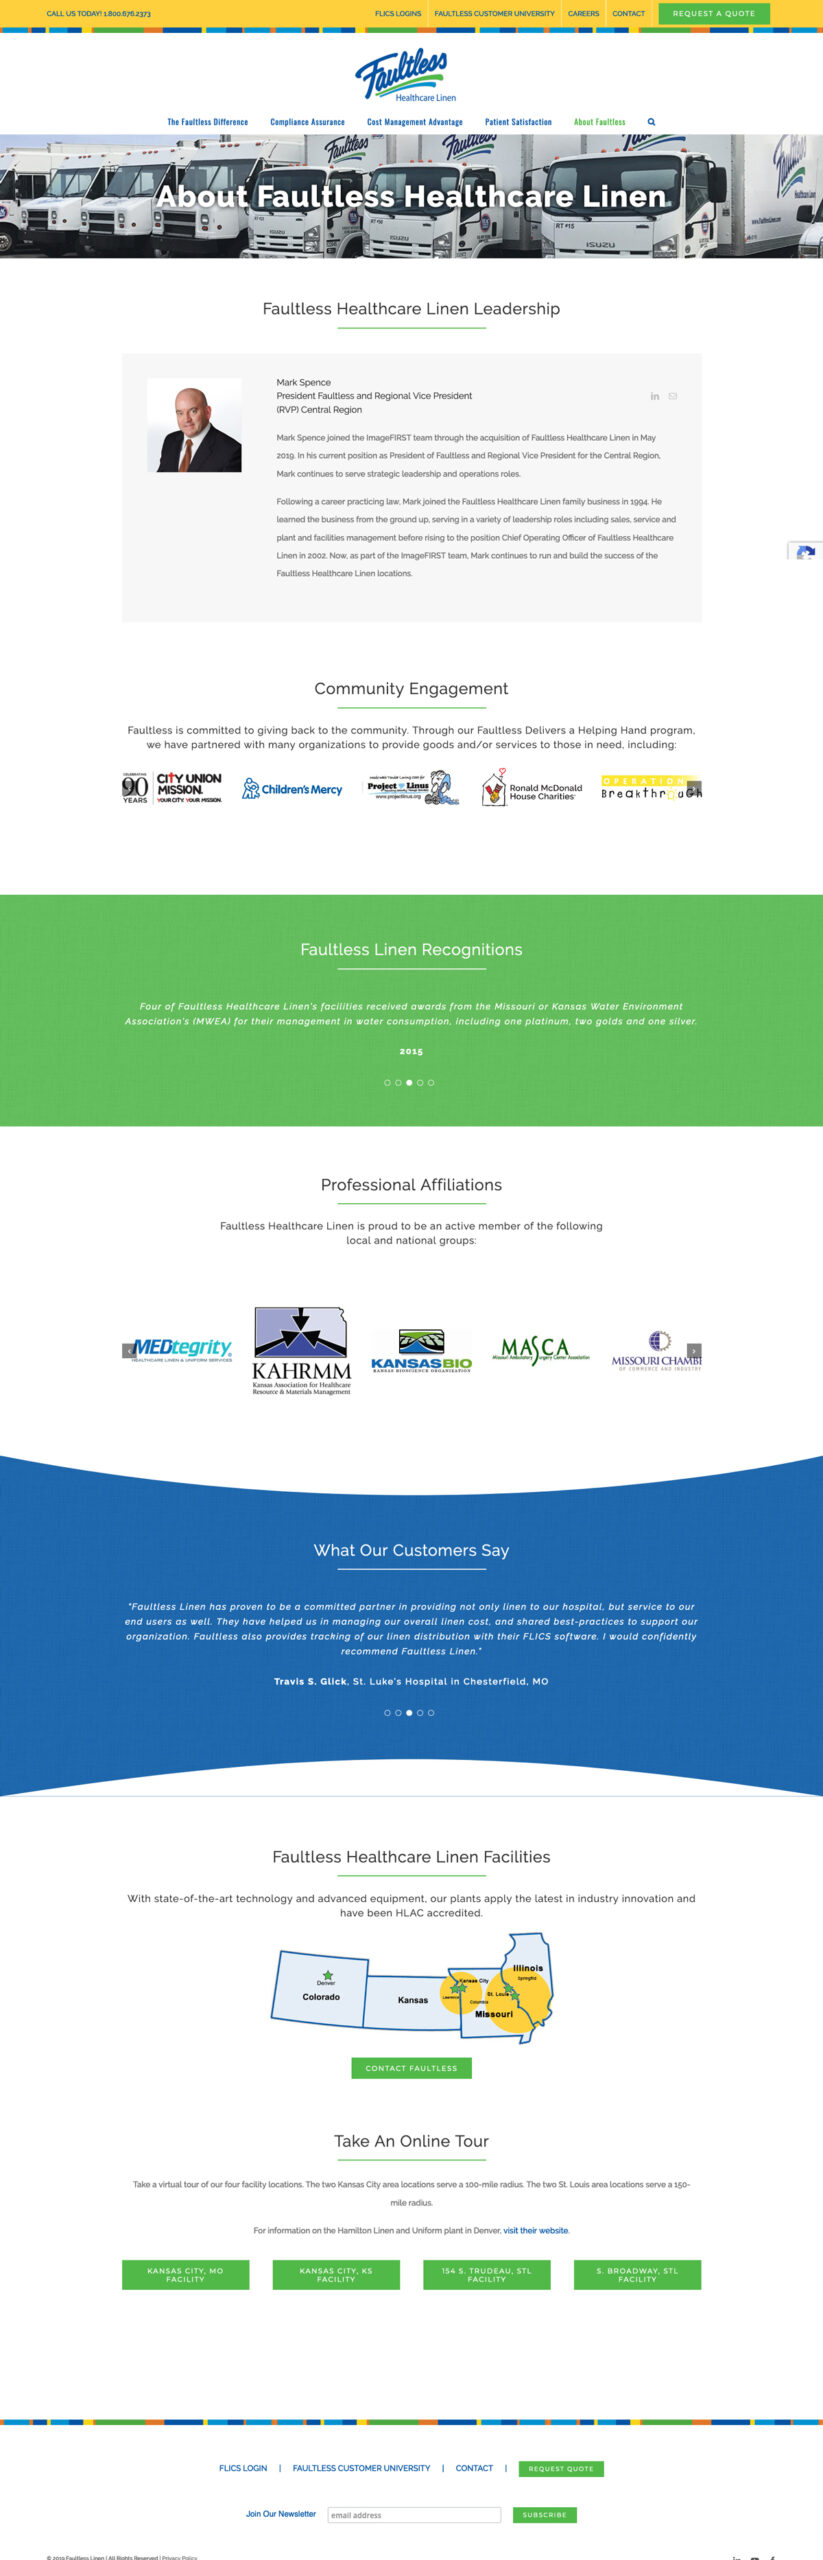 Company Website Design for Faultless Healthcare Linen - About Faultless Healtcare Linen